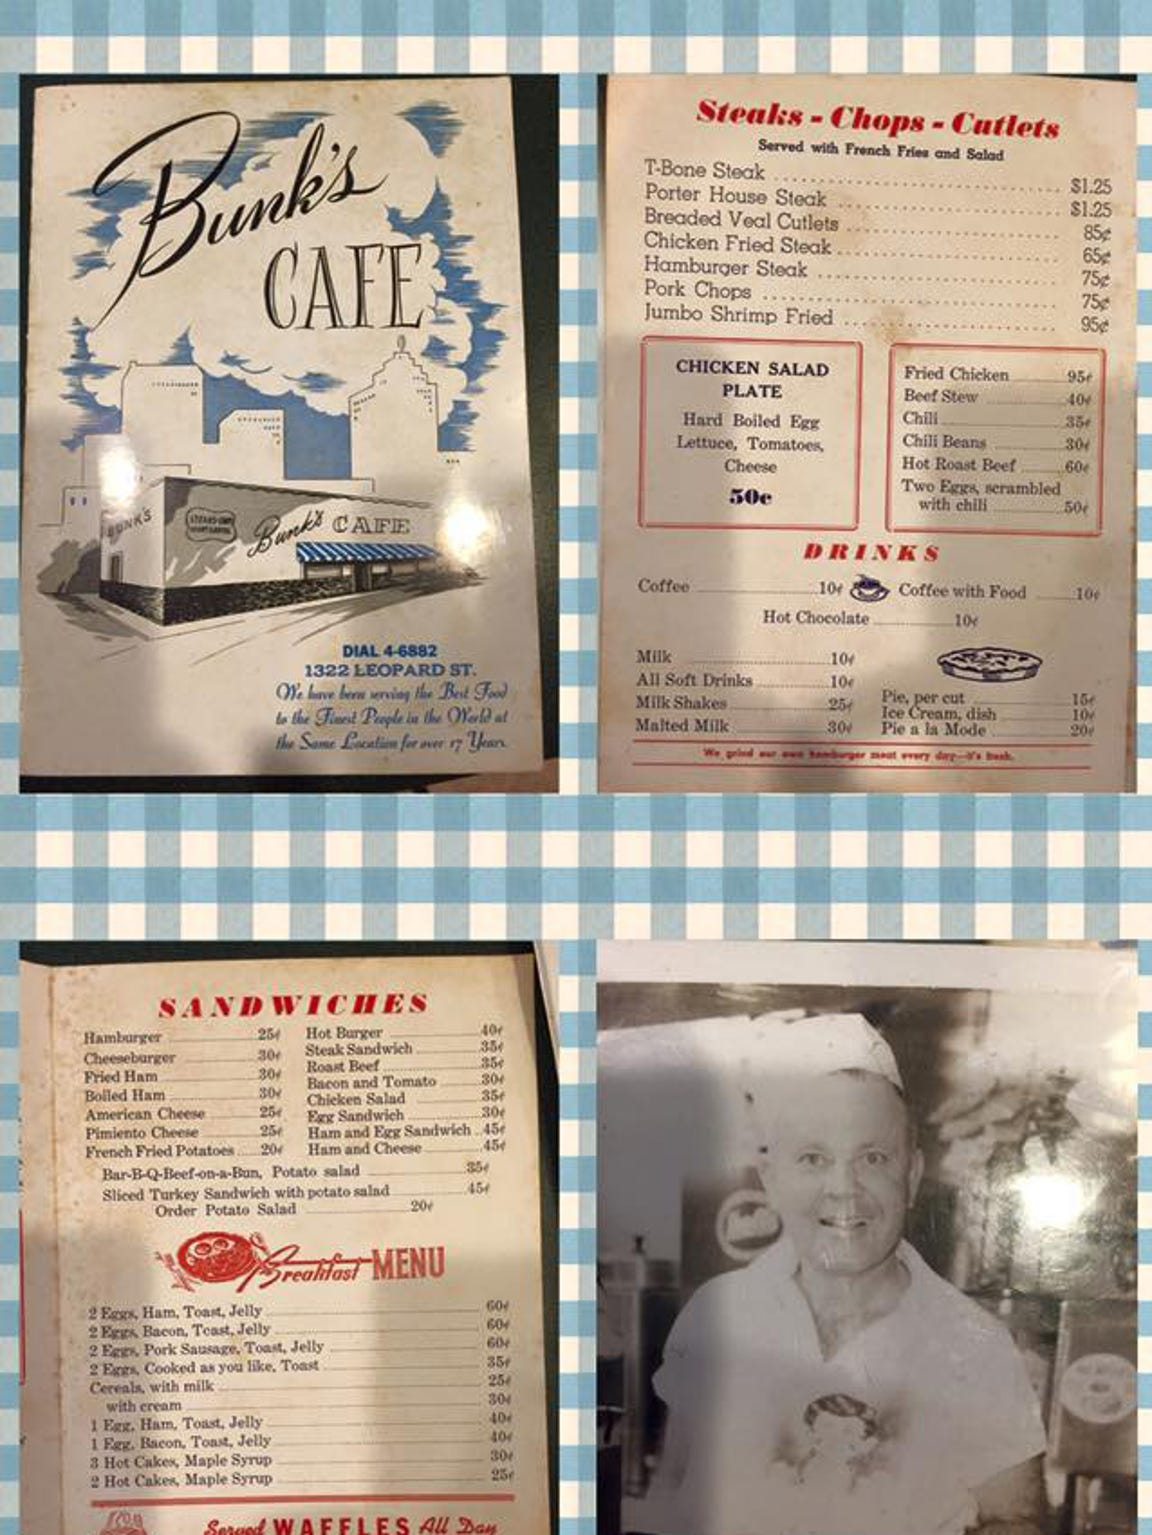 Images of the menu for Bunk's Cafe at 1322 Leopard